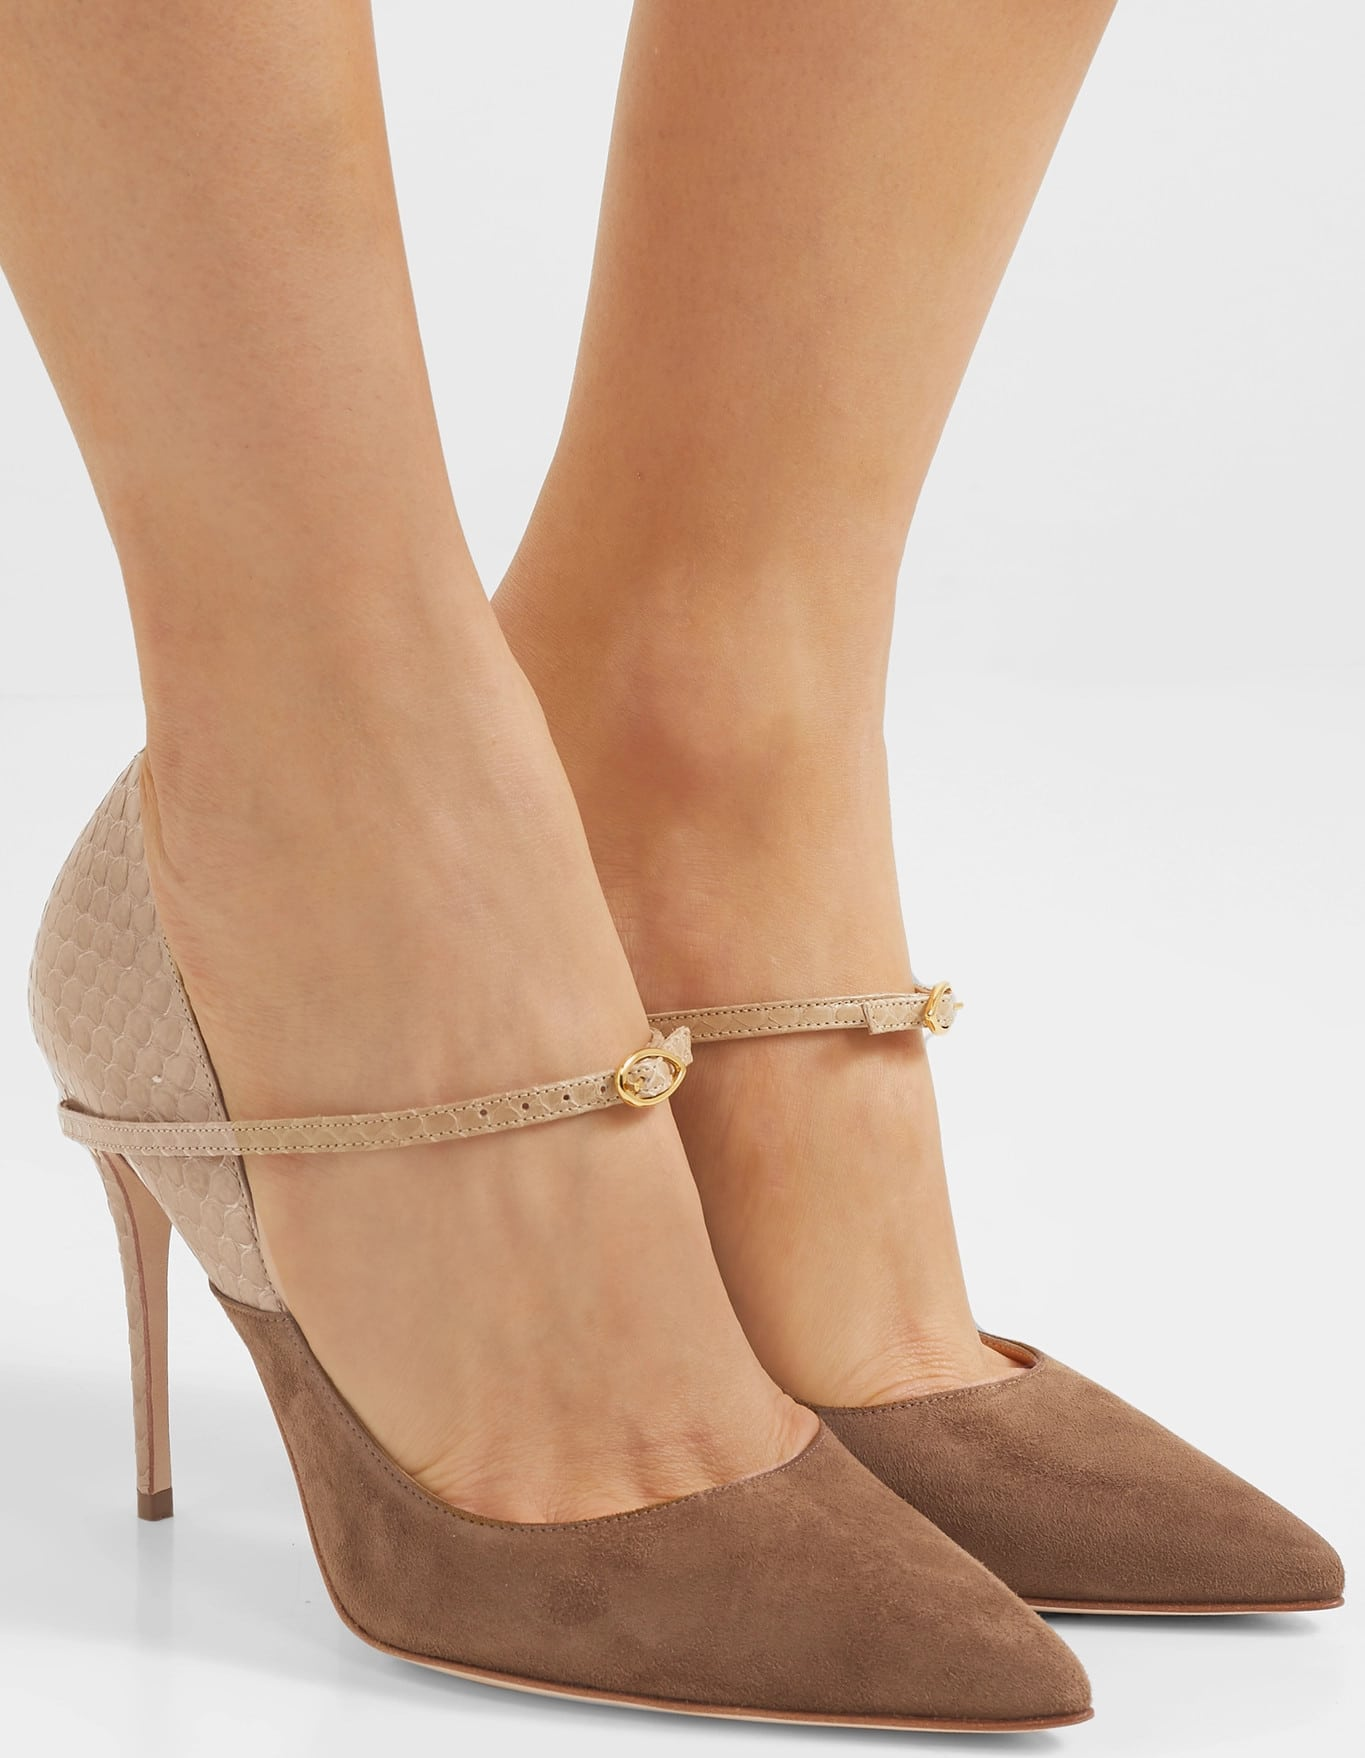 This Jennifer Chamandi stiletto heel is threaded with a removable Mary Jane strap and measured to the millimeter to minimize pressure on your soles